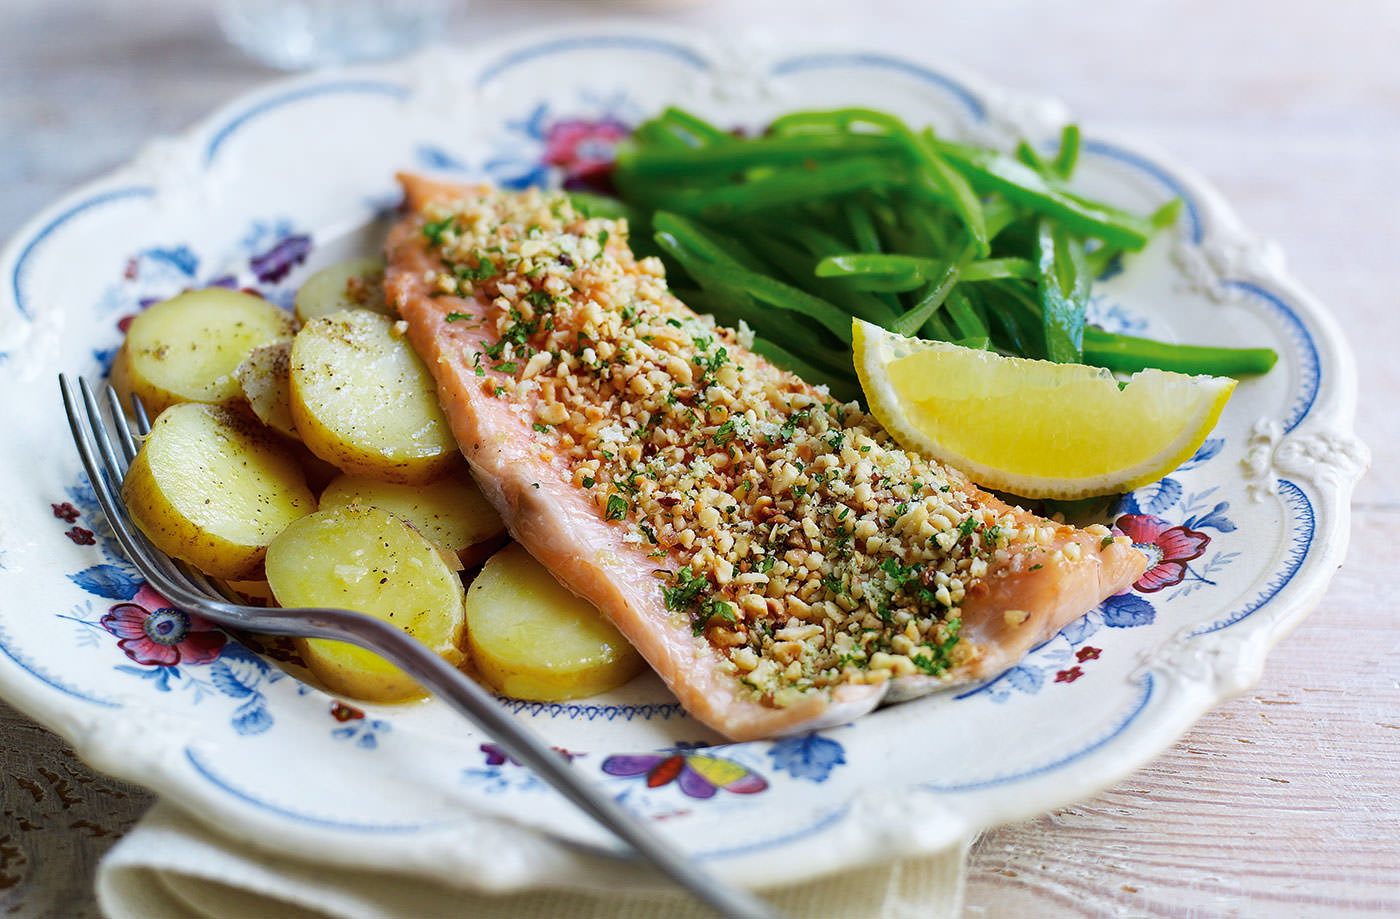 Trout fillets with a hazelnut crust recipe